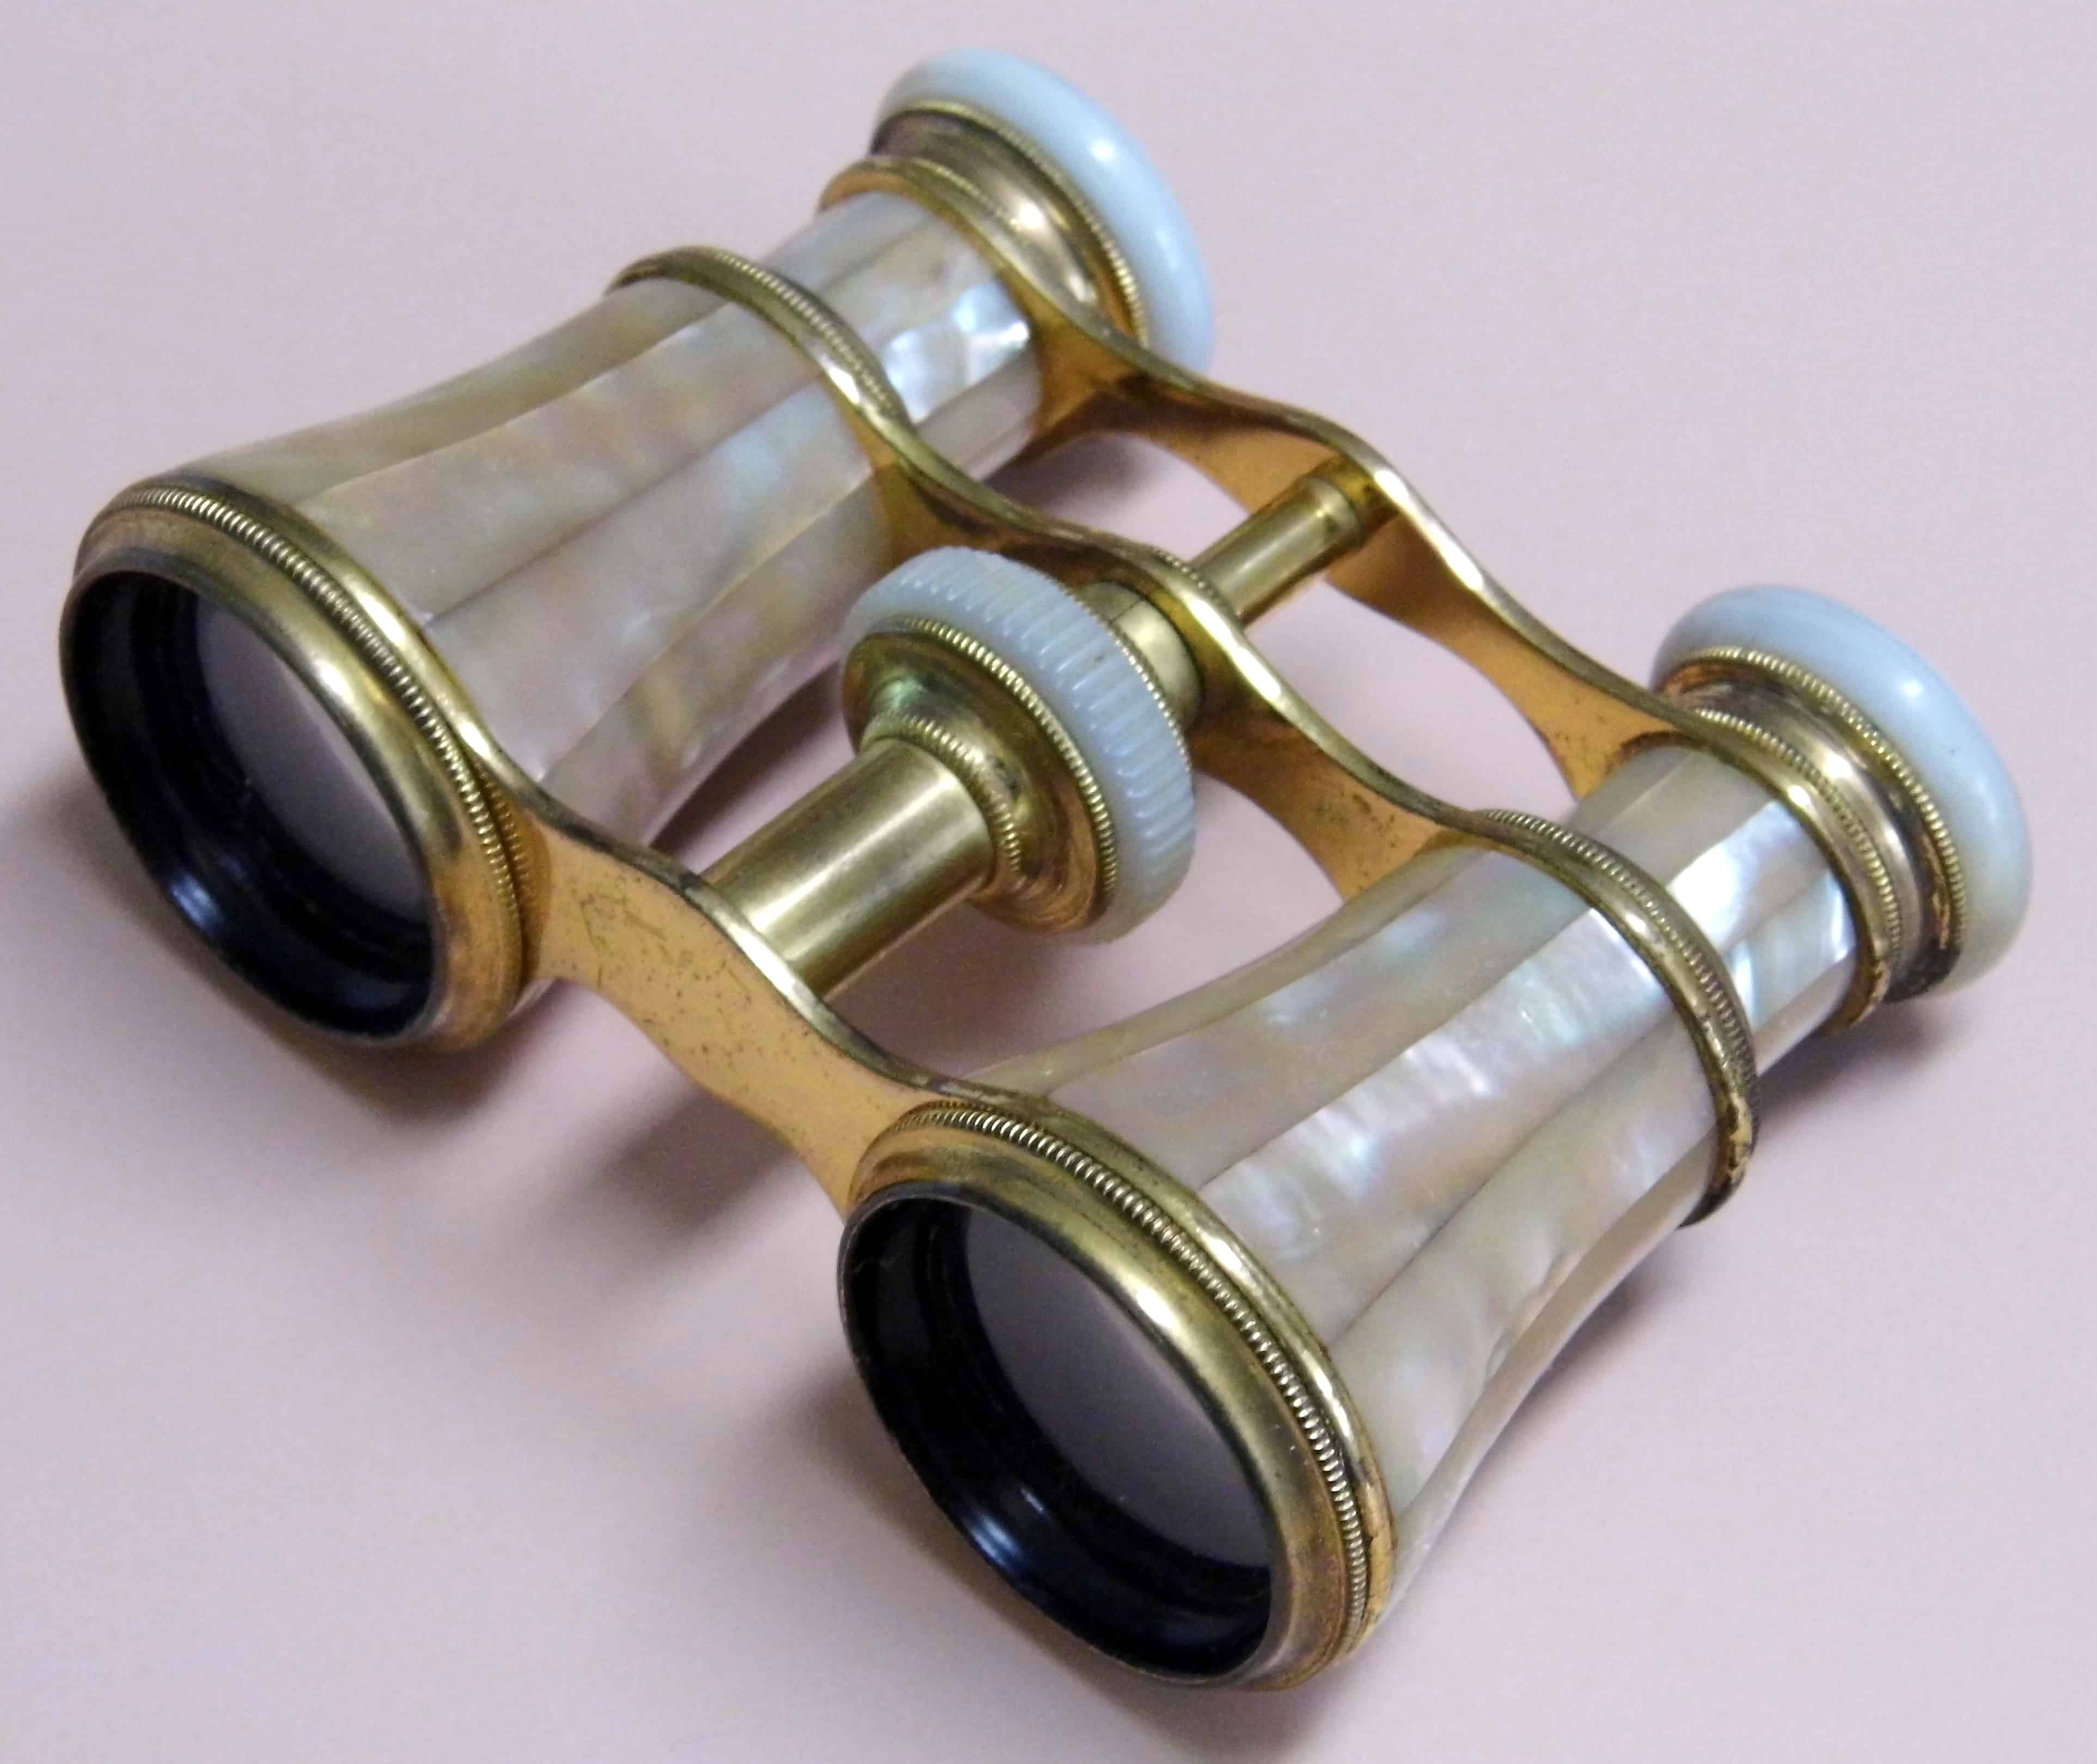 Mother of Pearl Opera Glasses © Wikimedia Commons